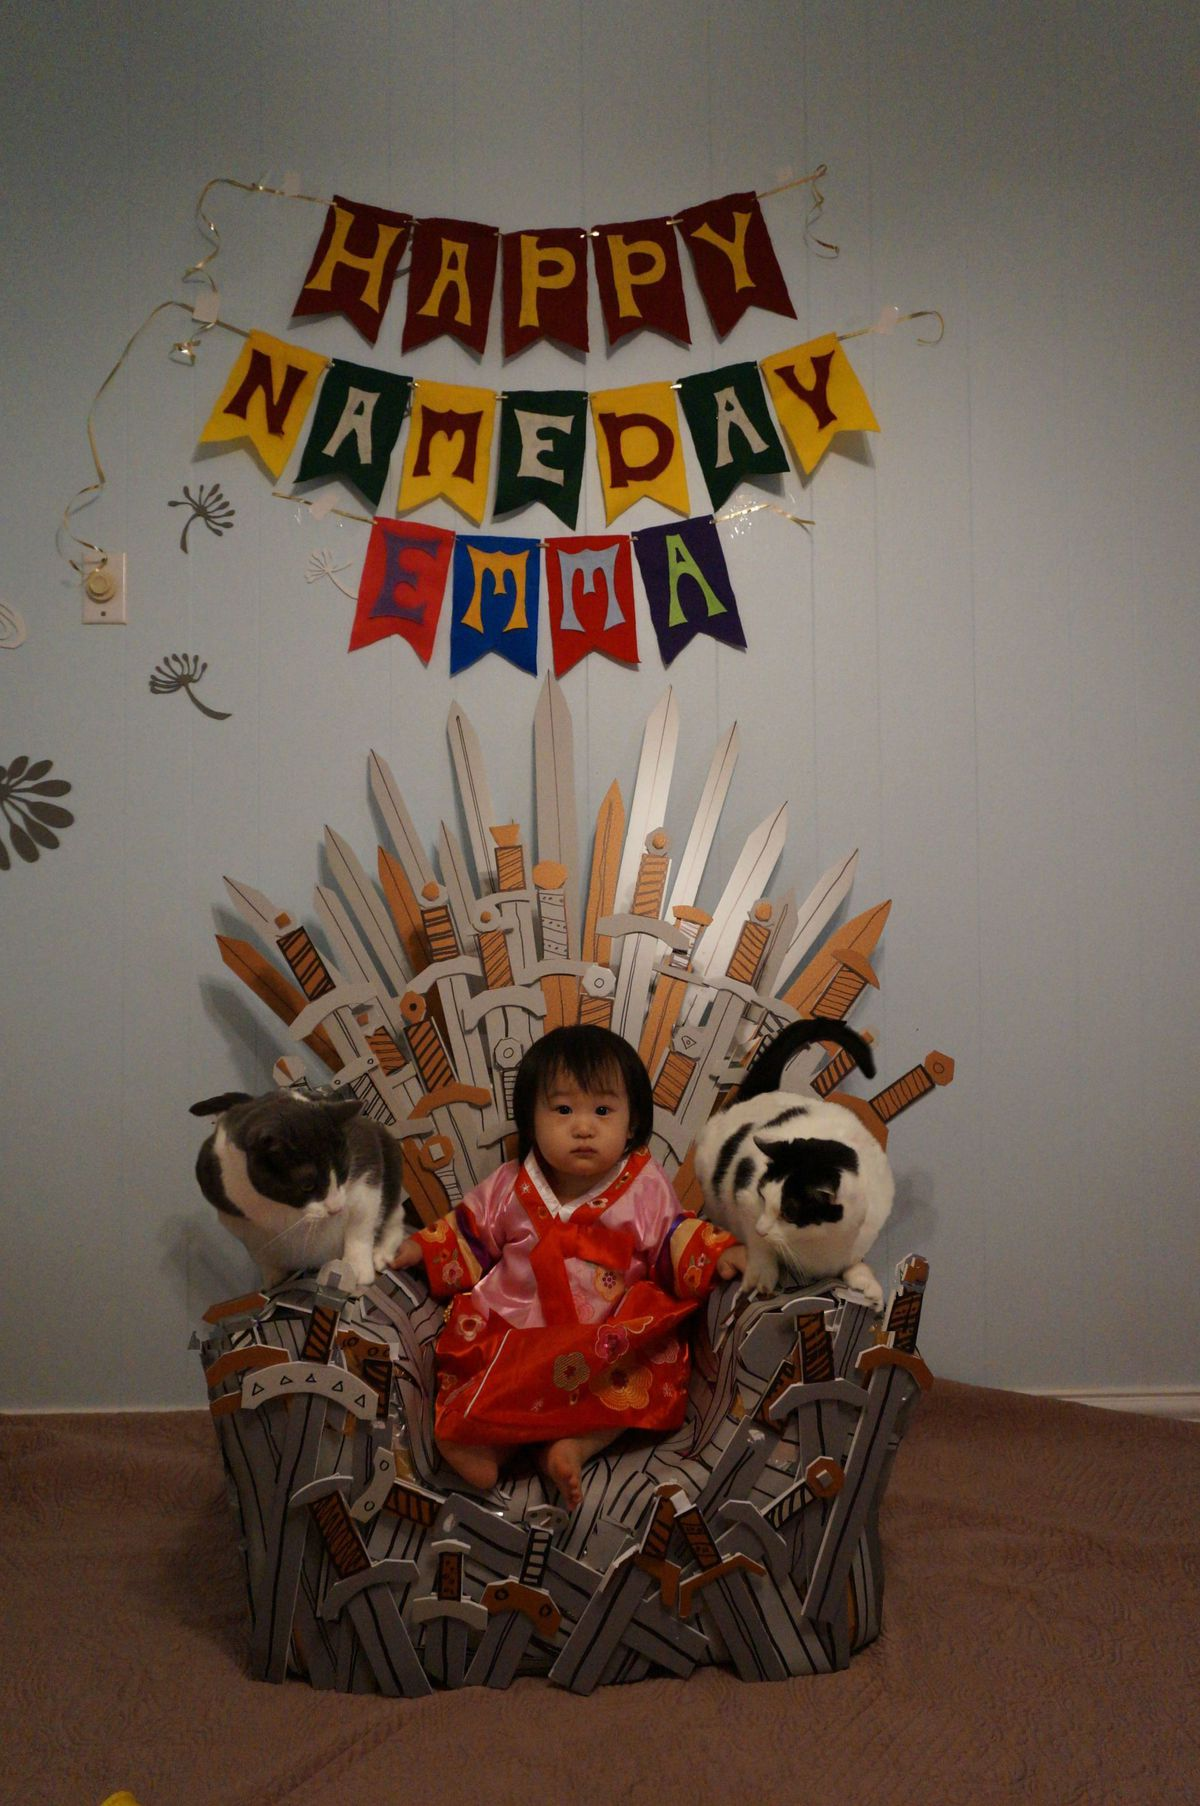 game of throne chair sofa bed parents throw 1 year old the perfect 39game thrones